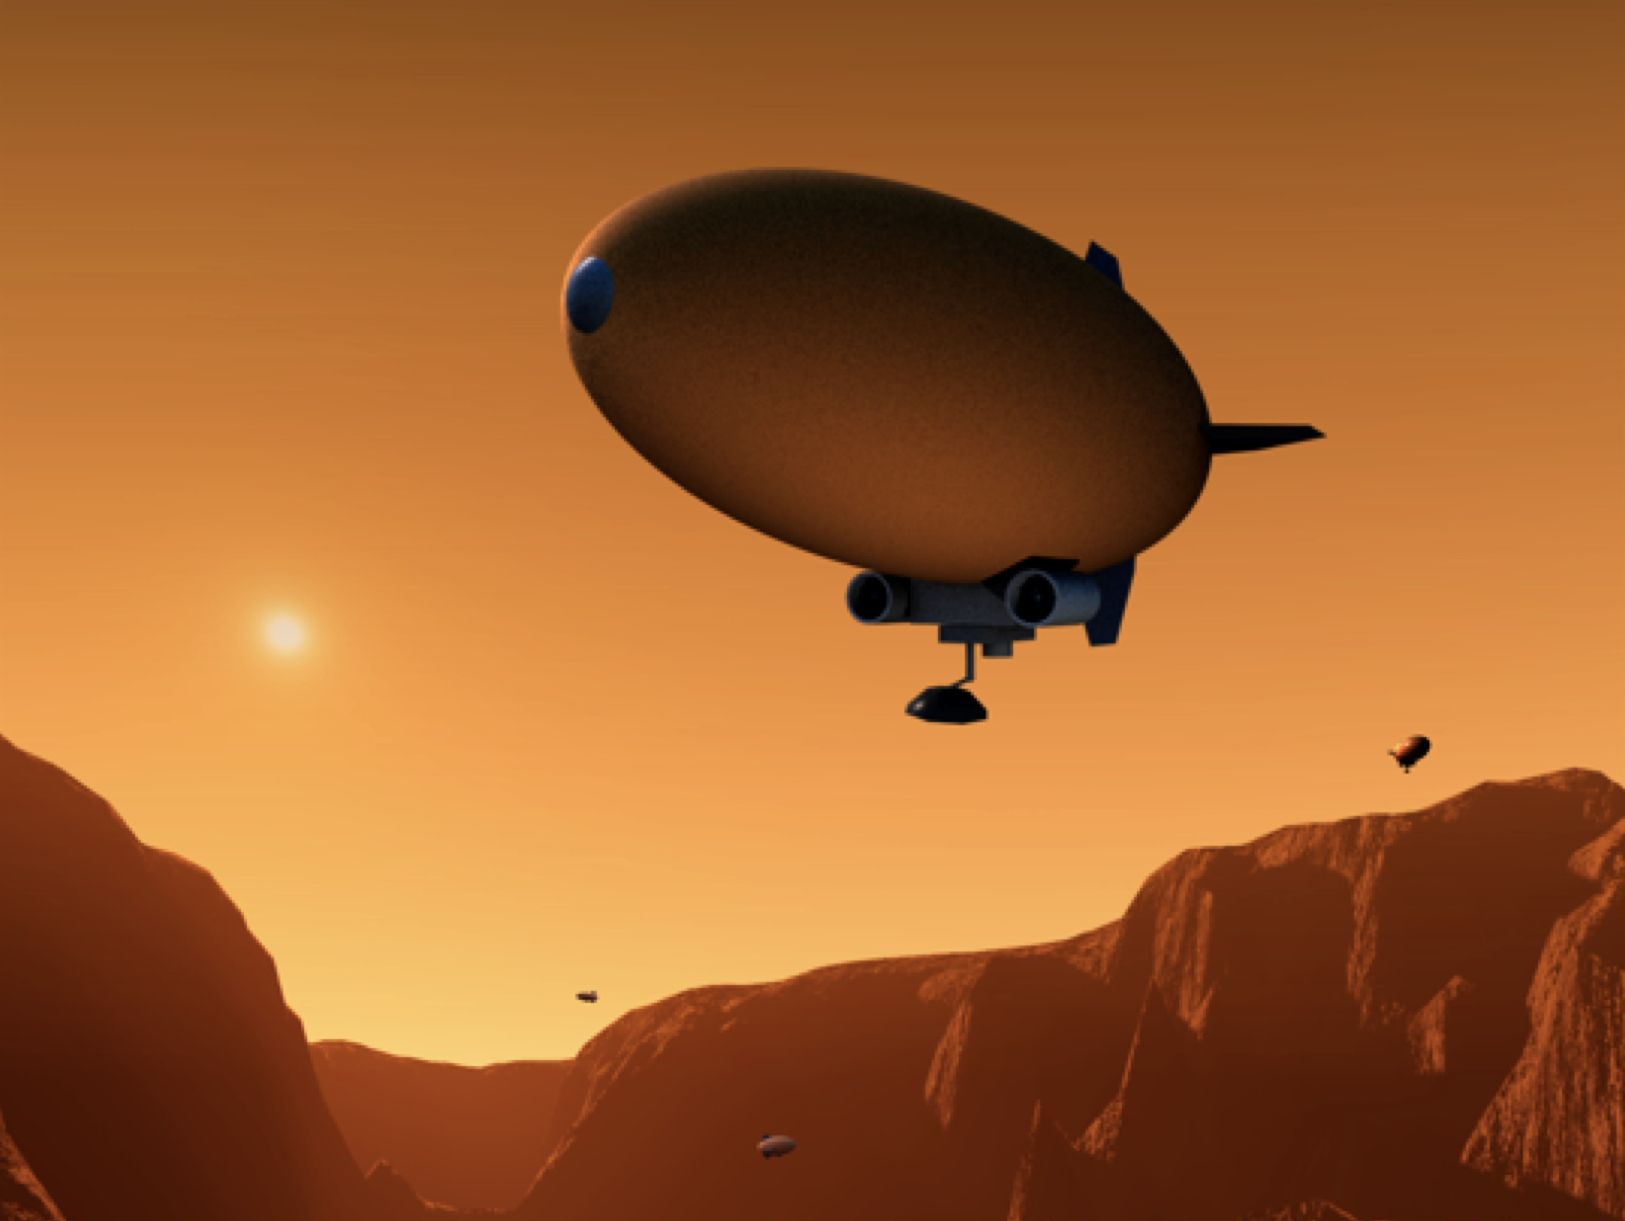 Blimps could one day play an important role in selecting interesting objects for closer examination by rovers on the ground or on the surface of lakes on alien planets.